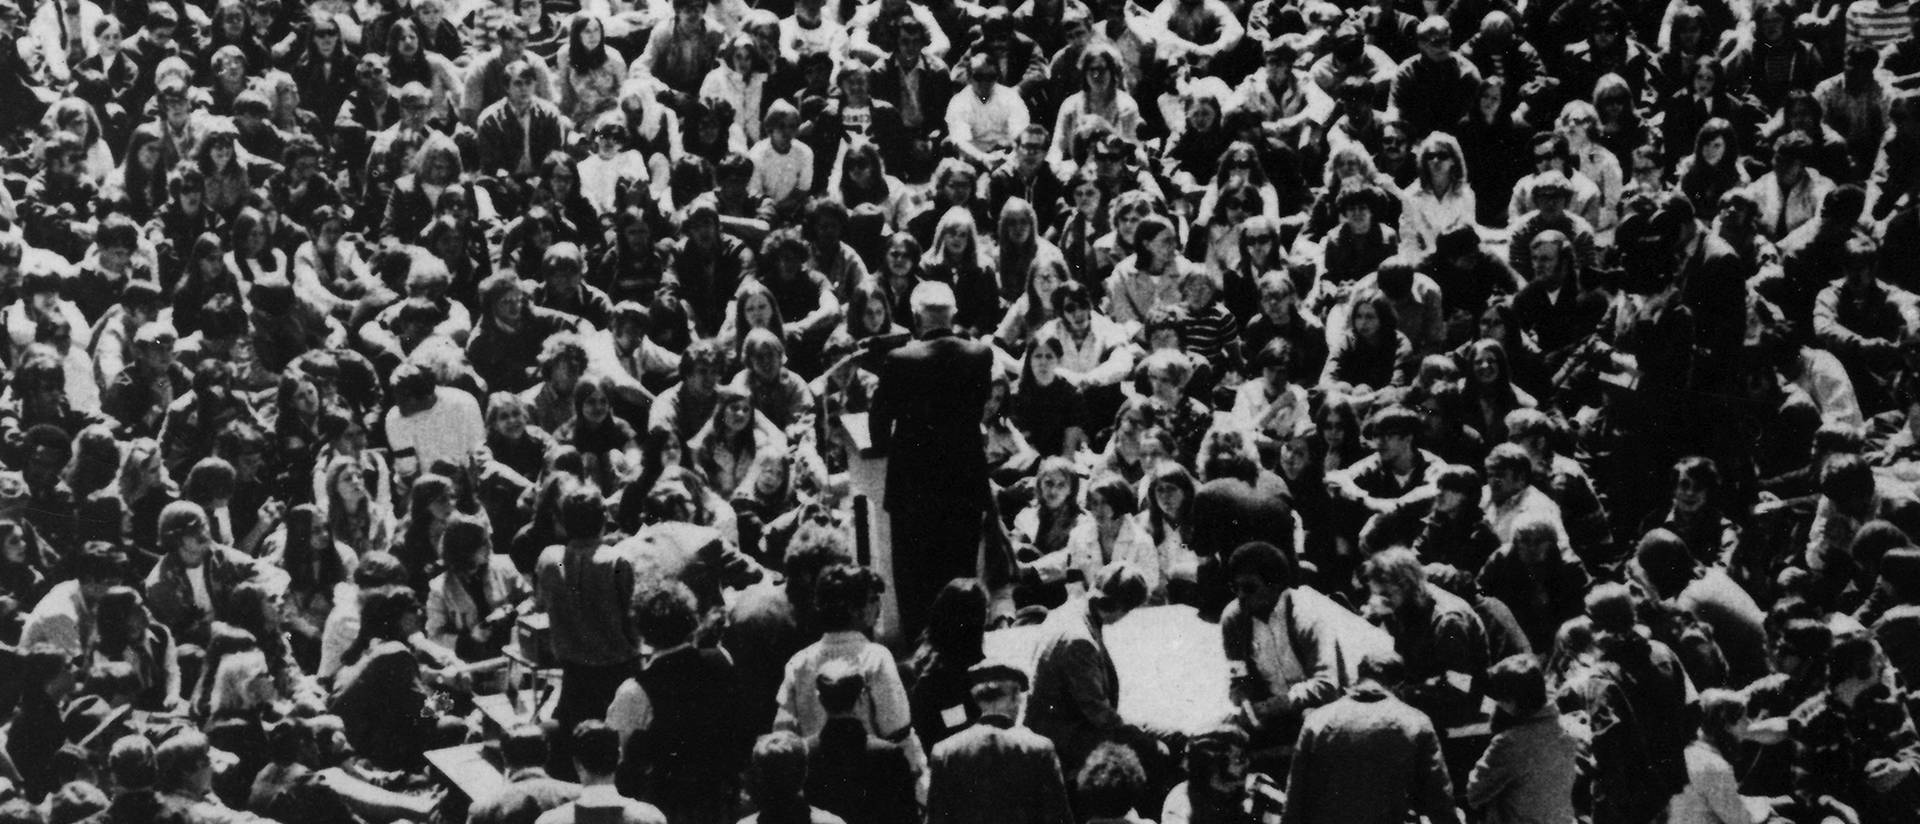 Wisconsin State University-Eau Claire President Leonard Haas addresses 3,500 students on campus May 6, 1970. Photo credit Bill Edgar.